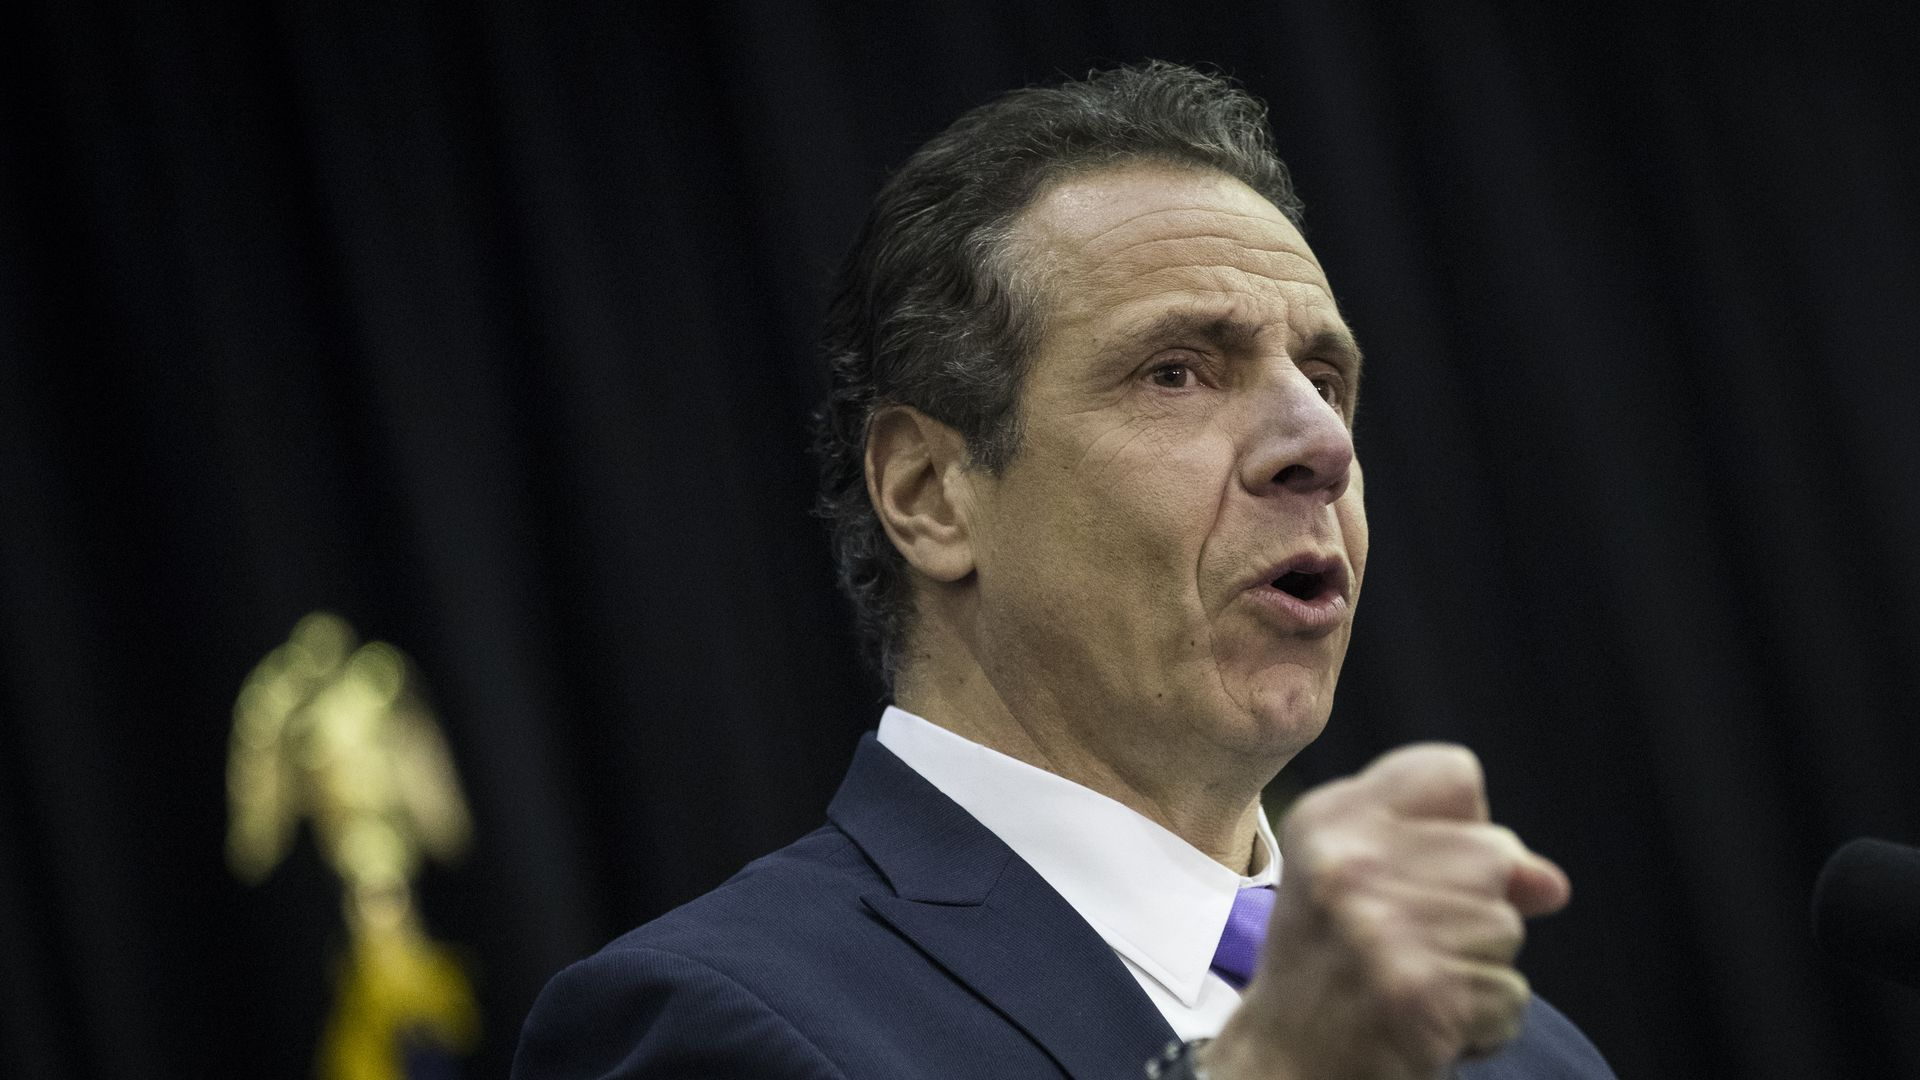 New York Governor Andrew Cuomo speaks during a bill signing event at John Jay College